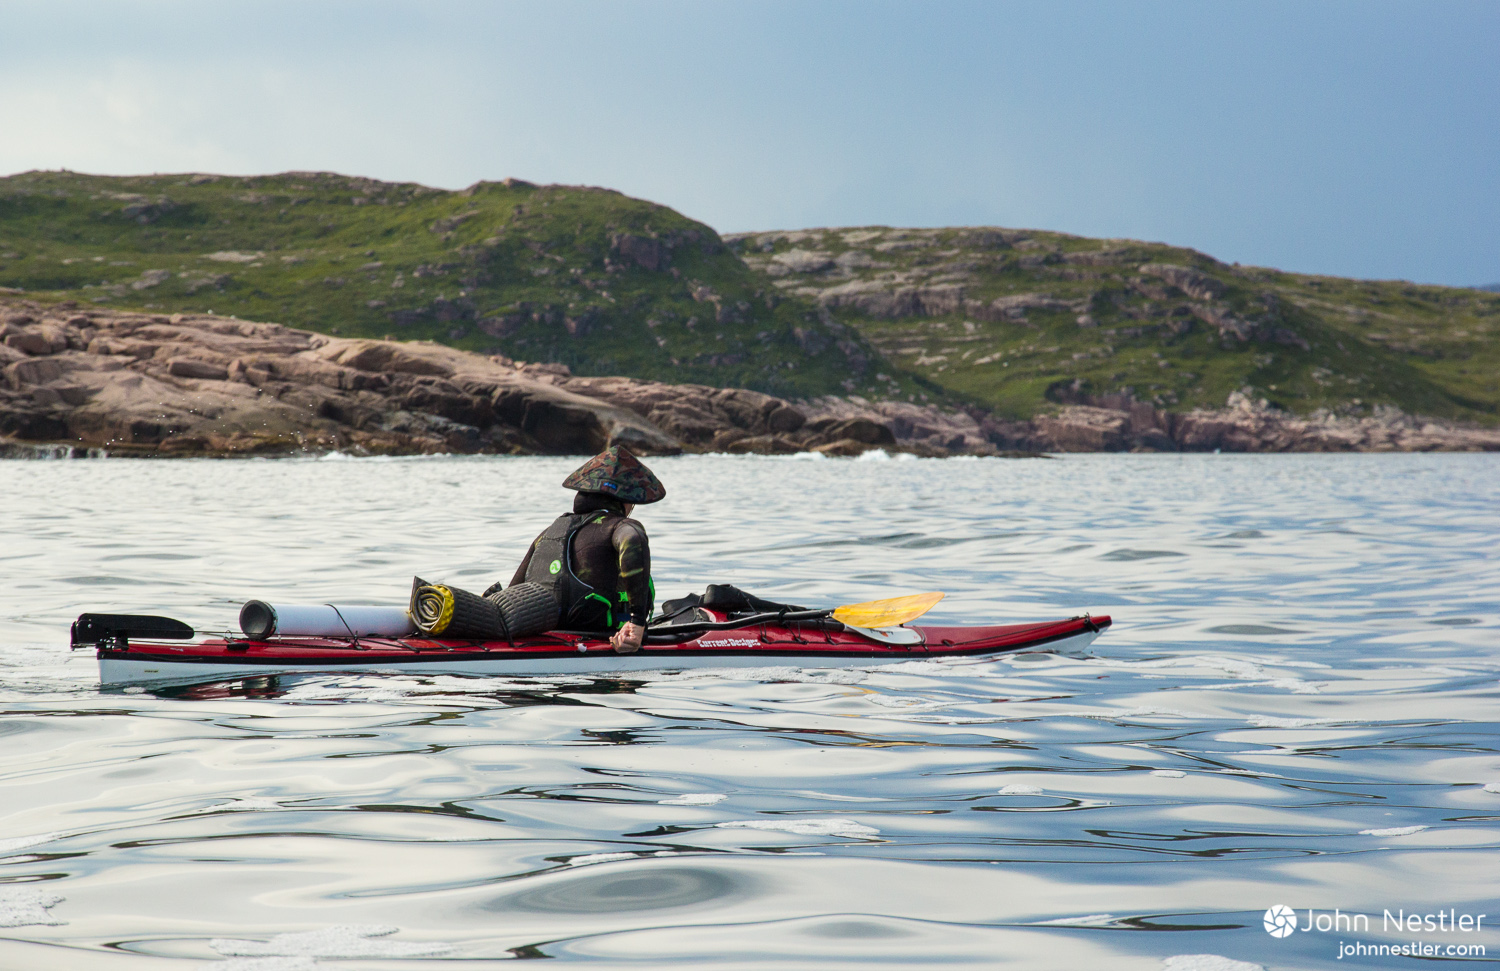 A friend sporting the KAVU Chillba while on a 20 day sea kayaking expedition in Newfoundland.